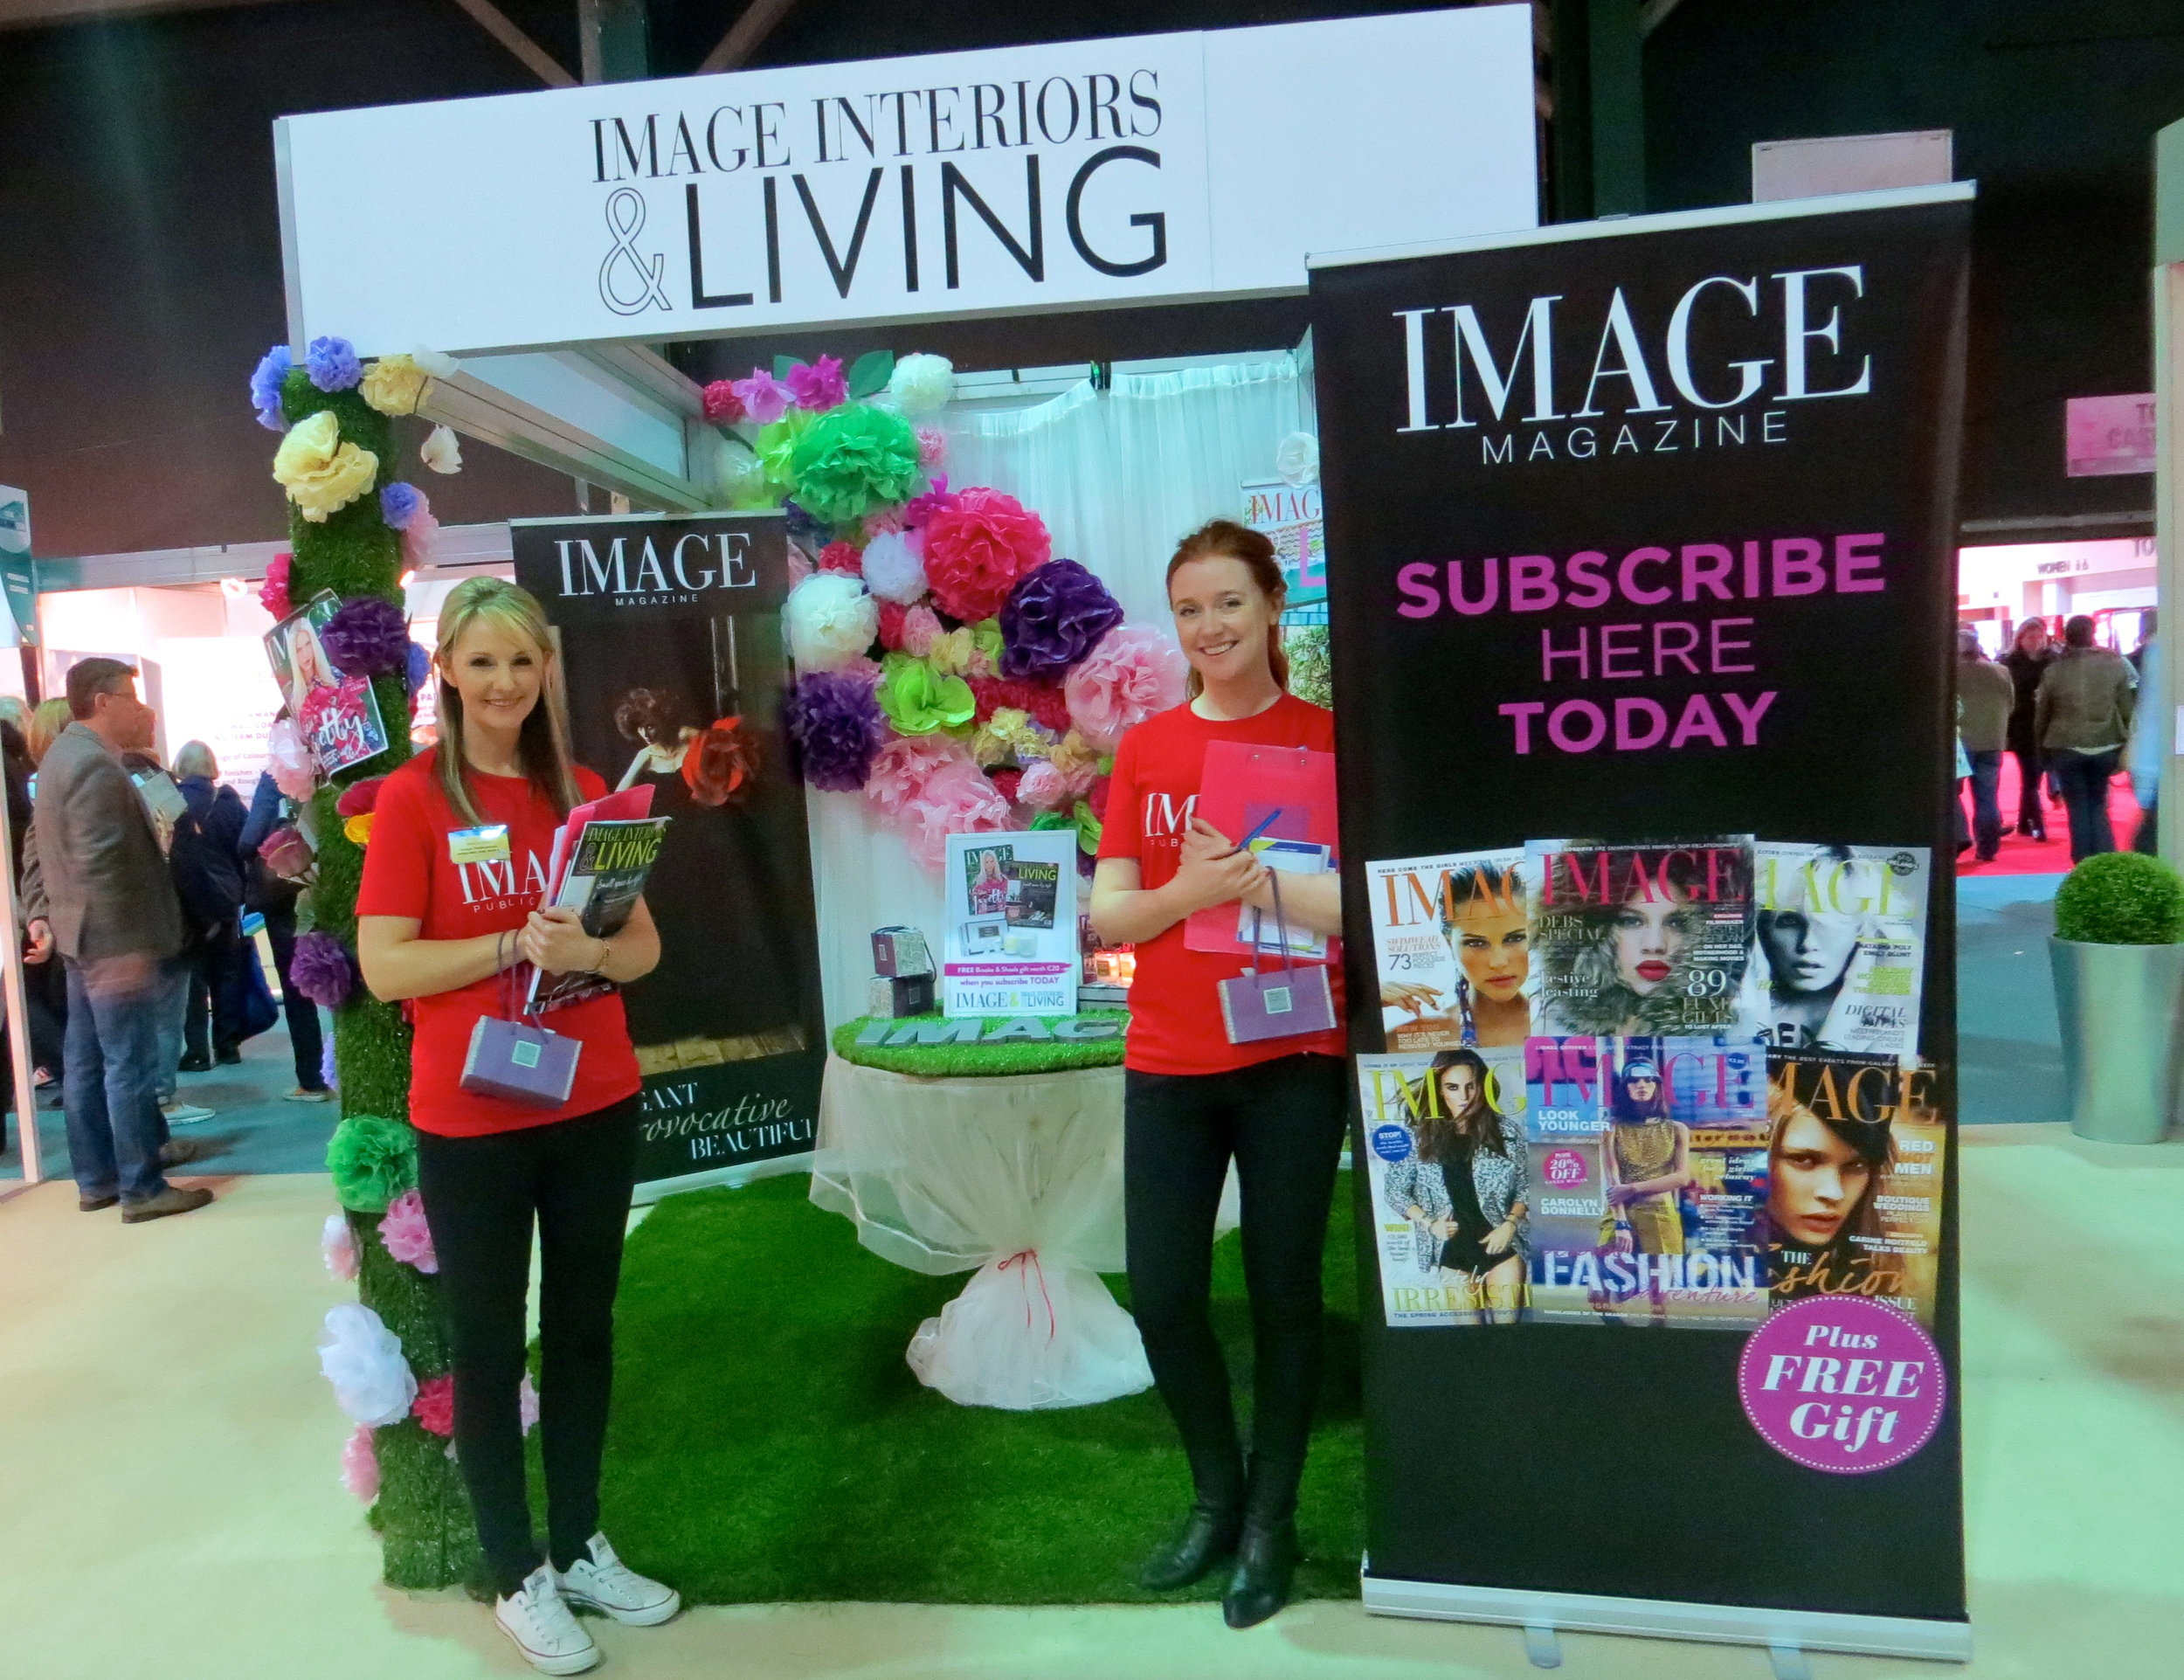 Image Interiors and Living stand